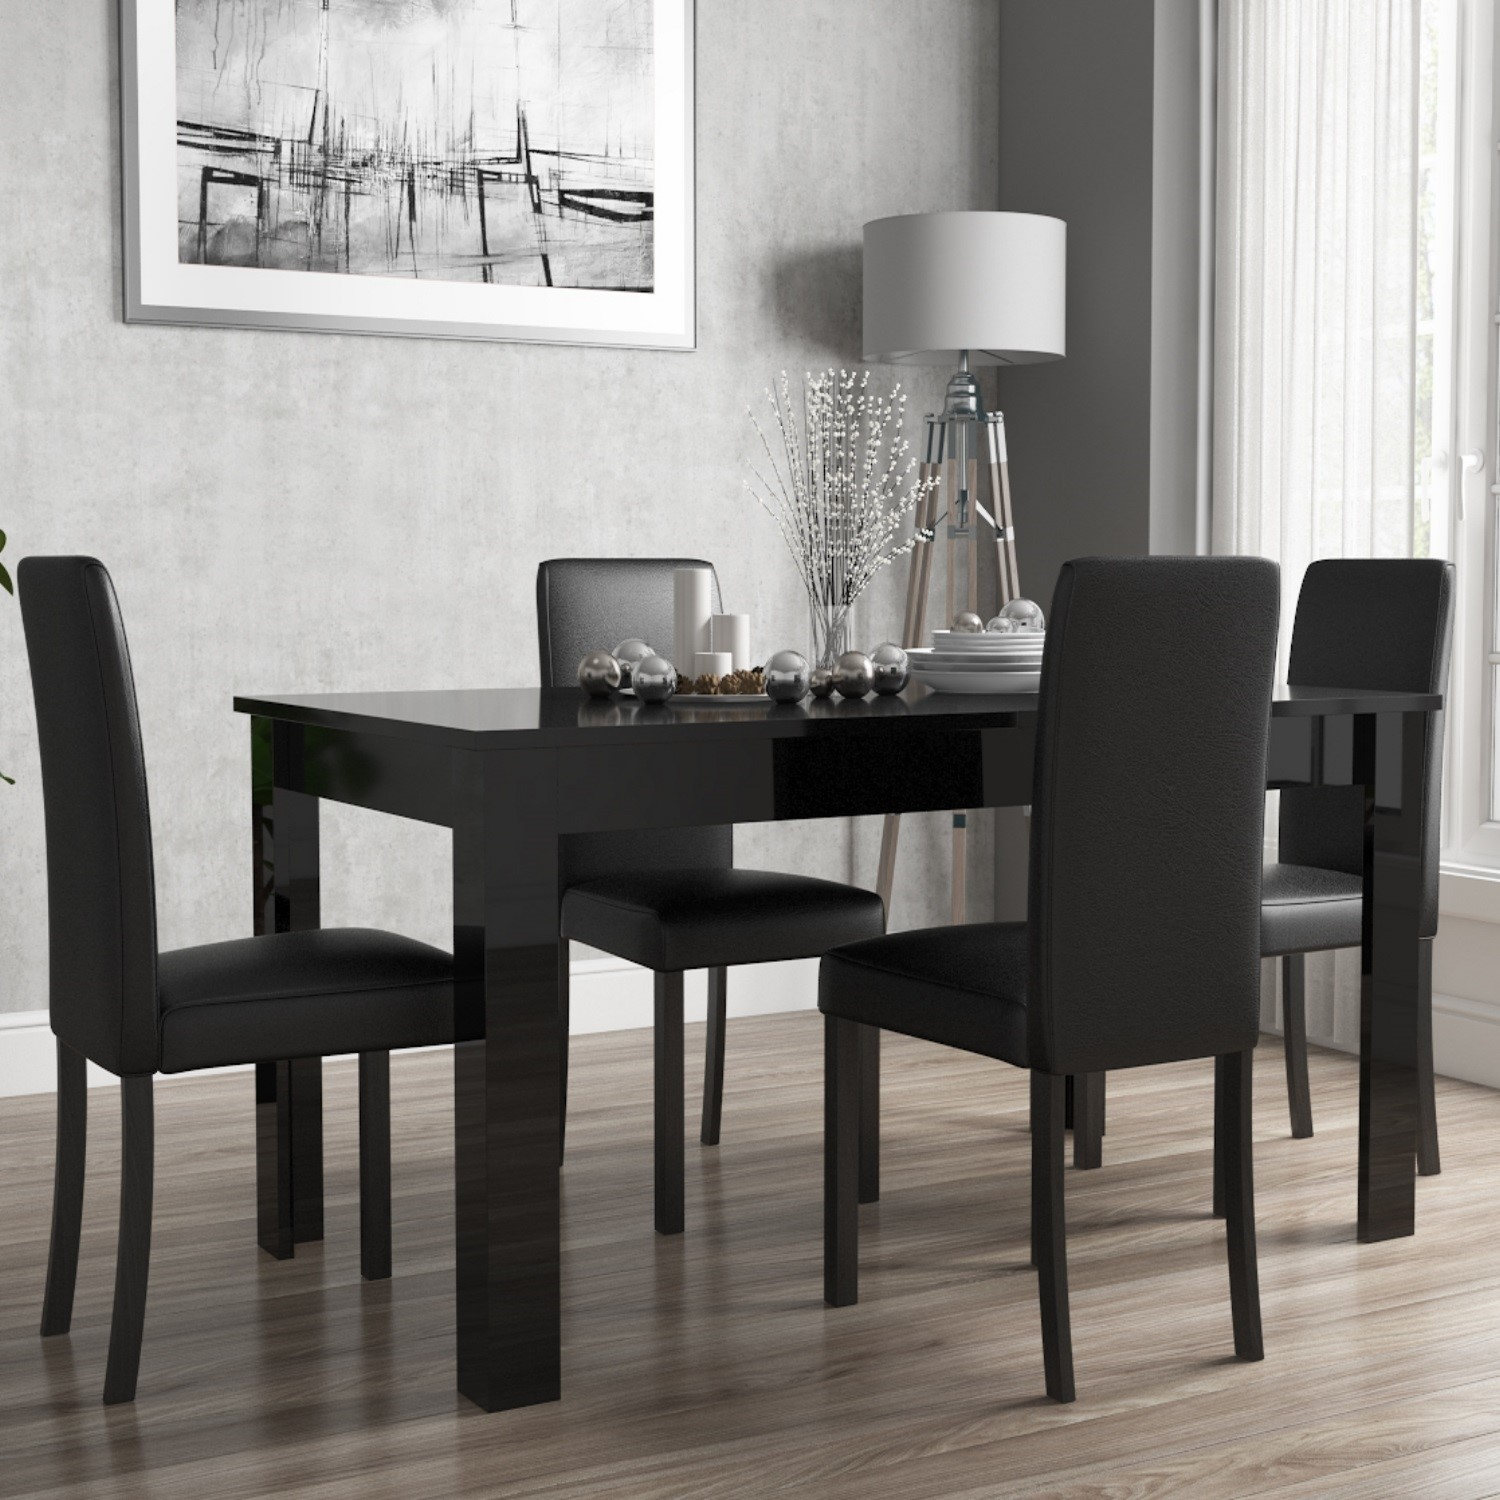 Black Gloss Extending Dining Table And 4 Black Faux Leather Chairs Furniture123